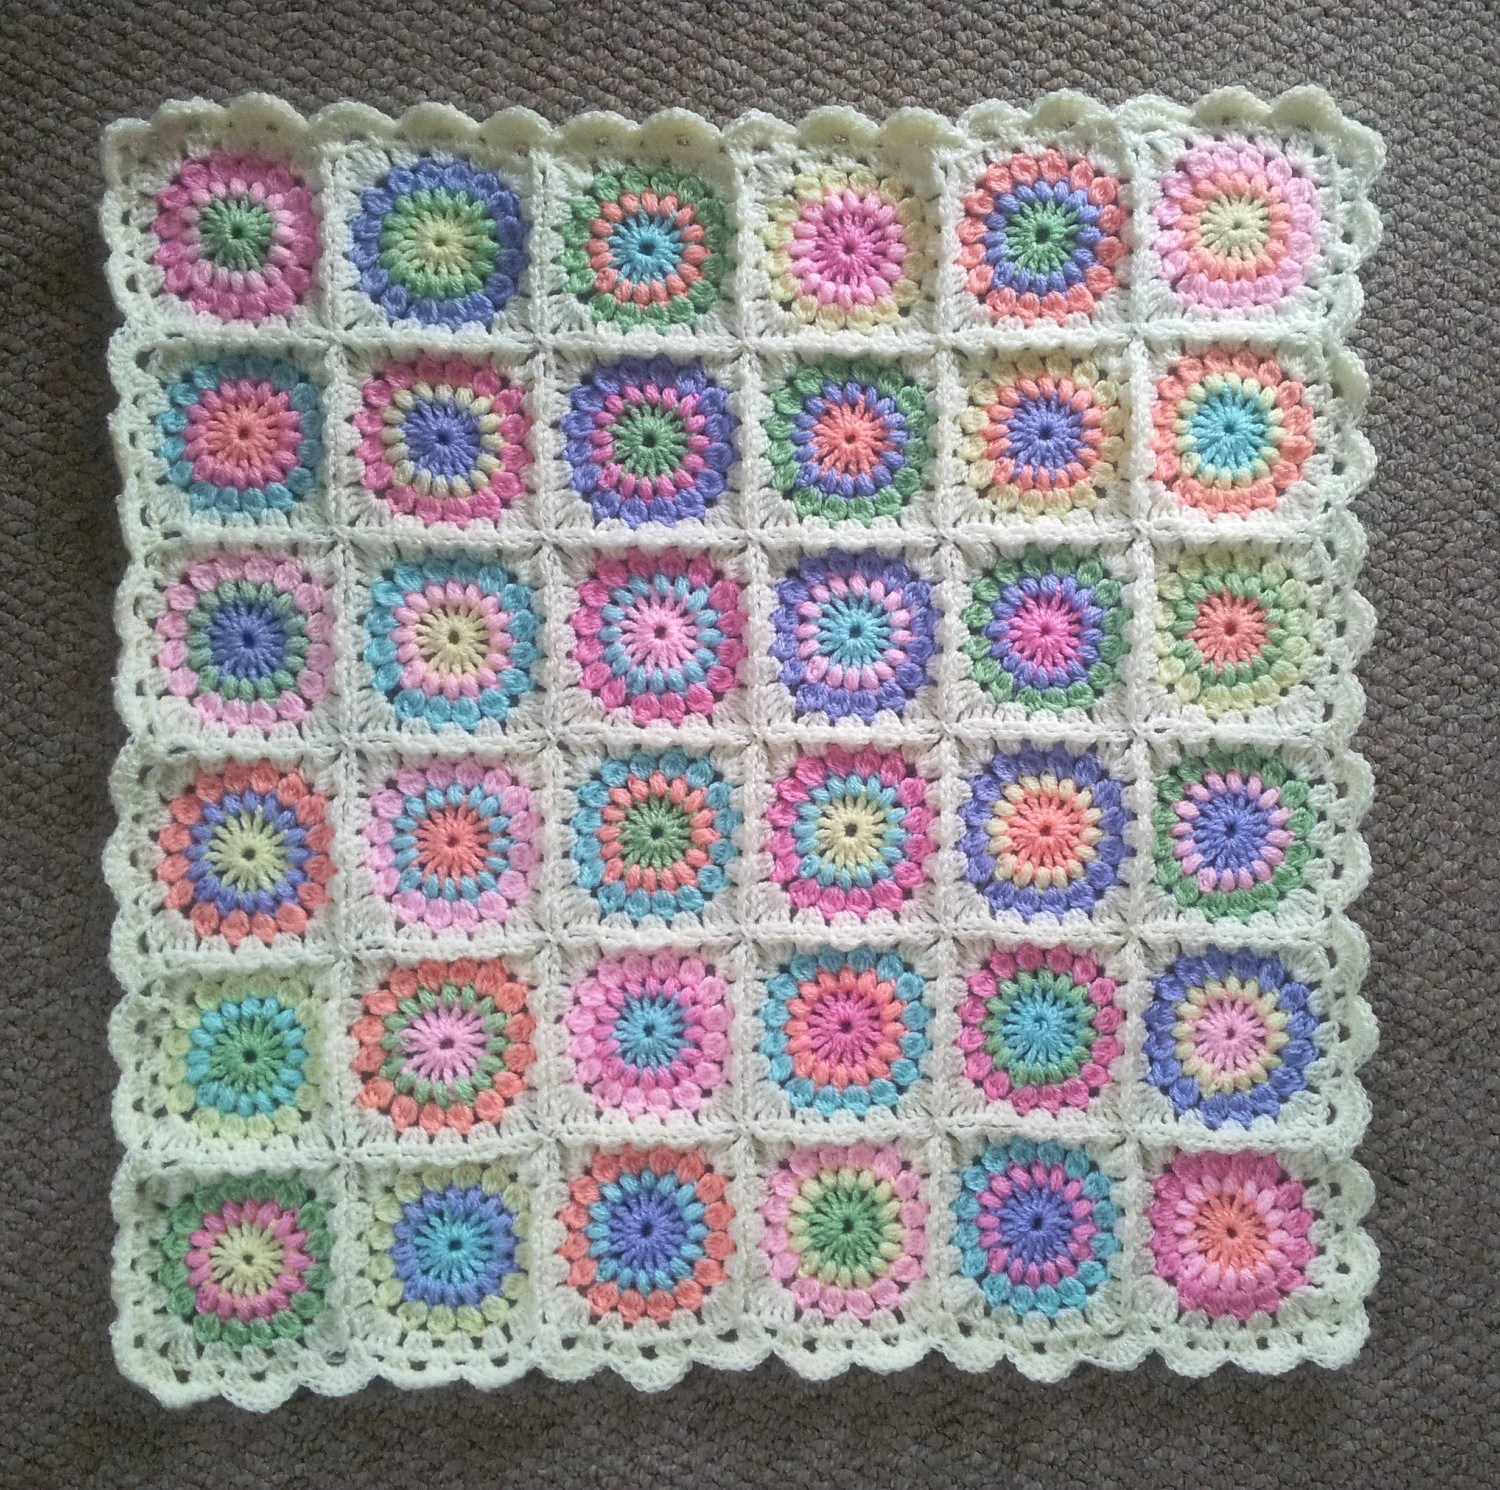 Crocheted Baby Blankets Crochet Baby Blanket Patterns Free